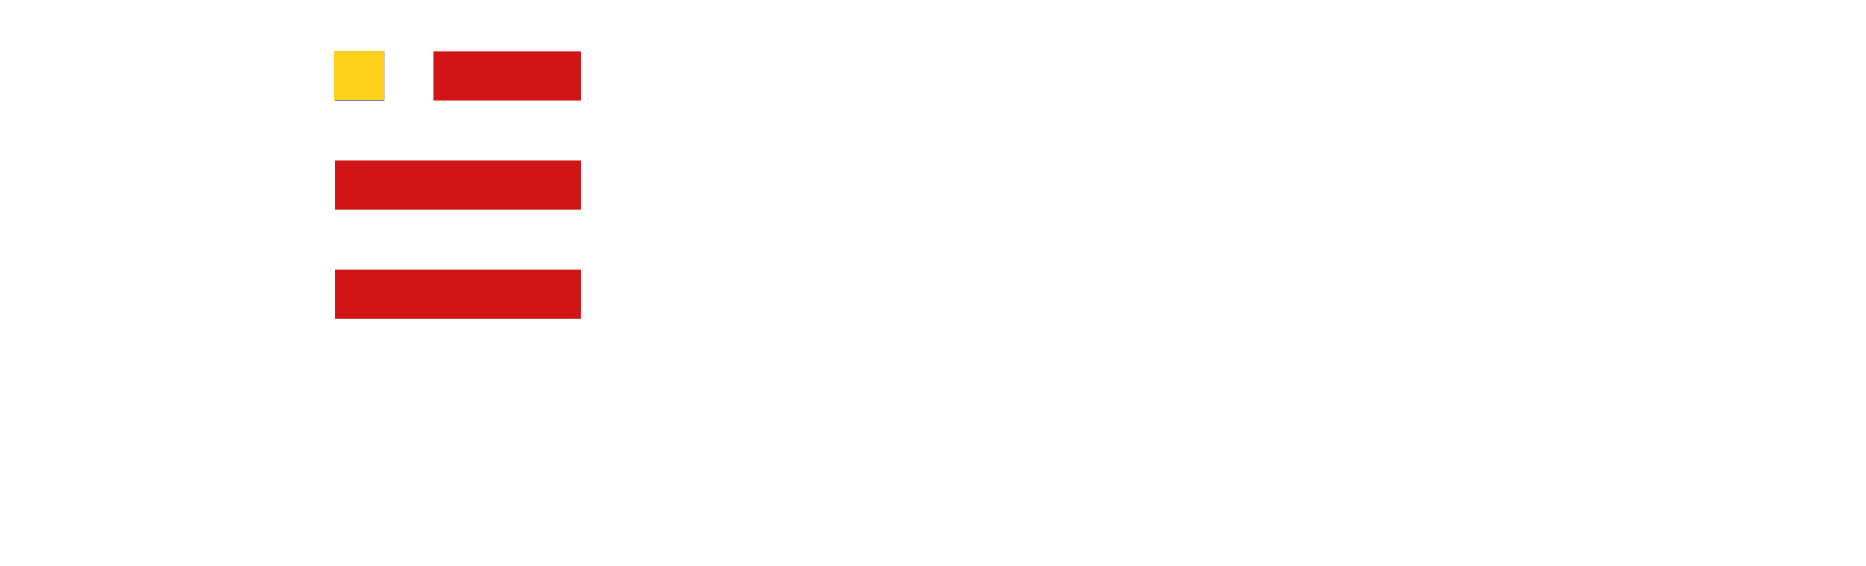 SearchPublicRecords.com logo